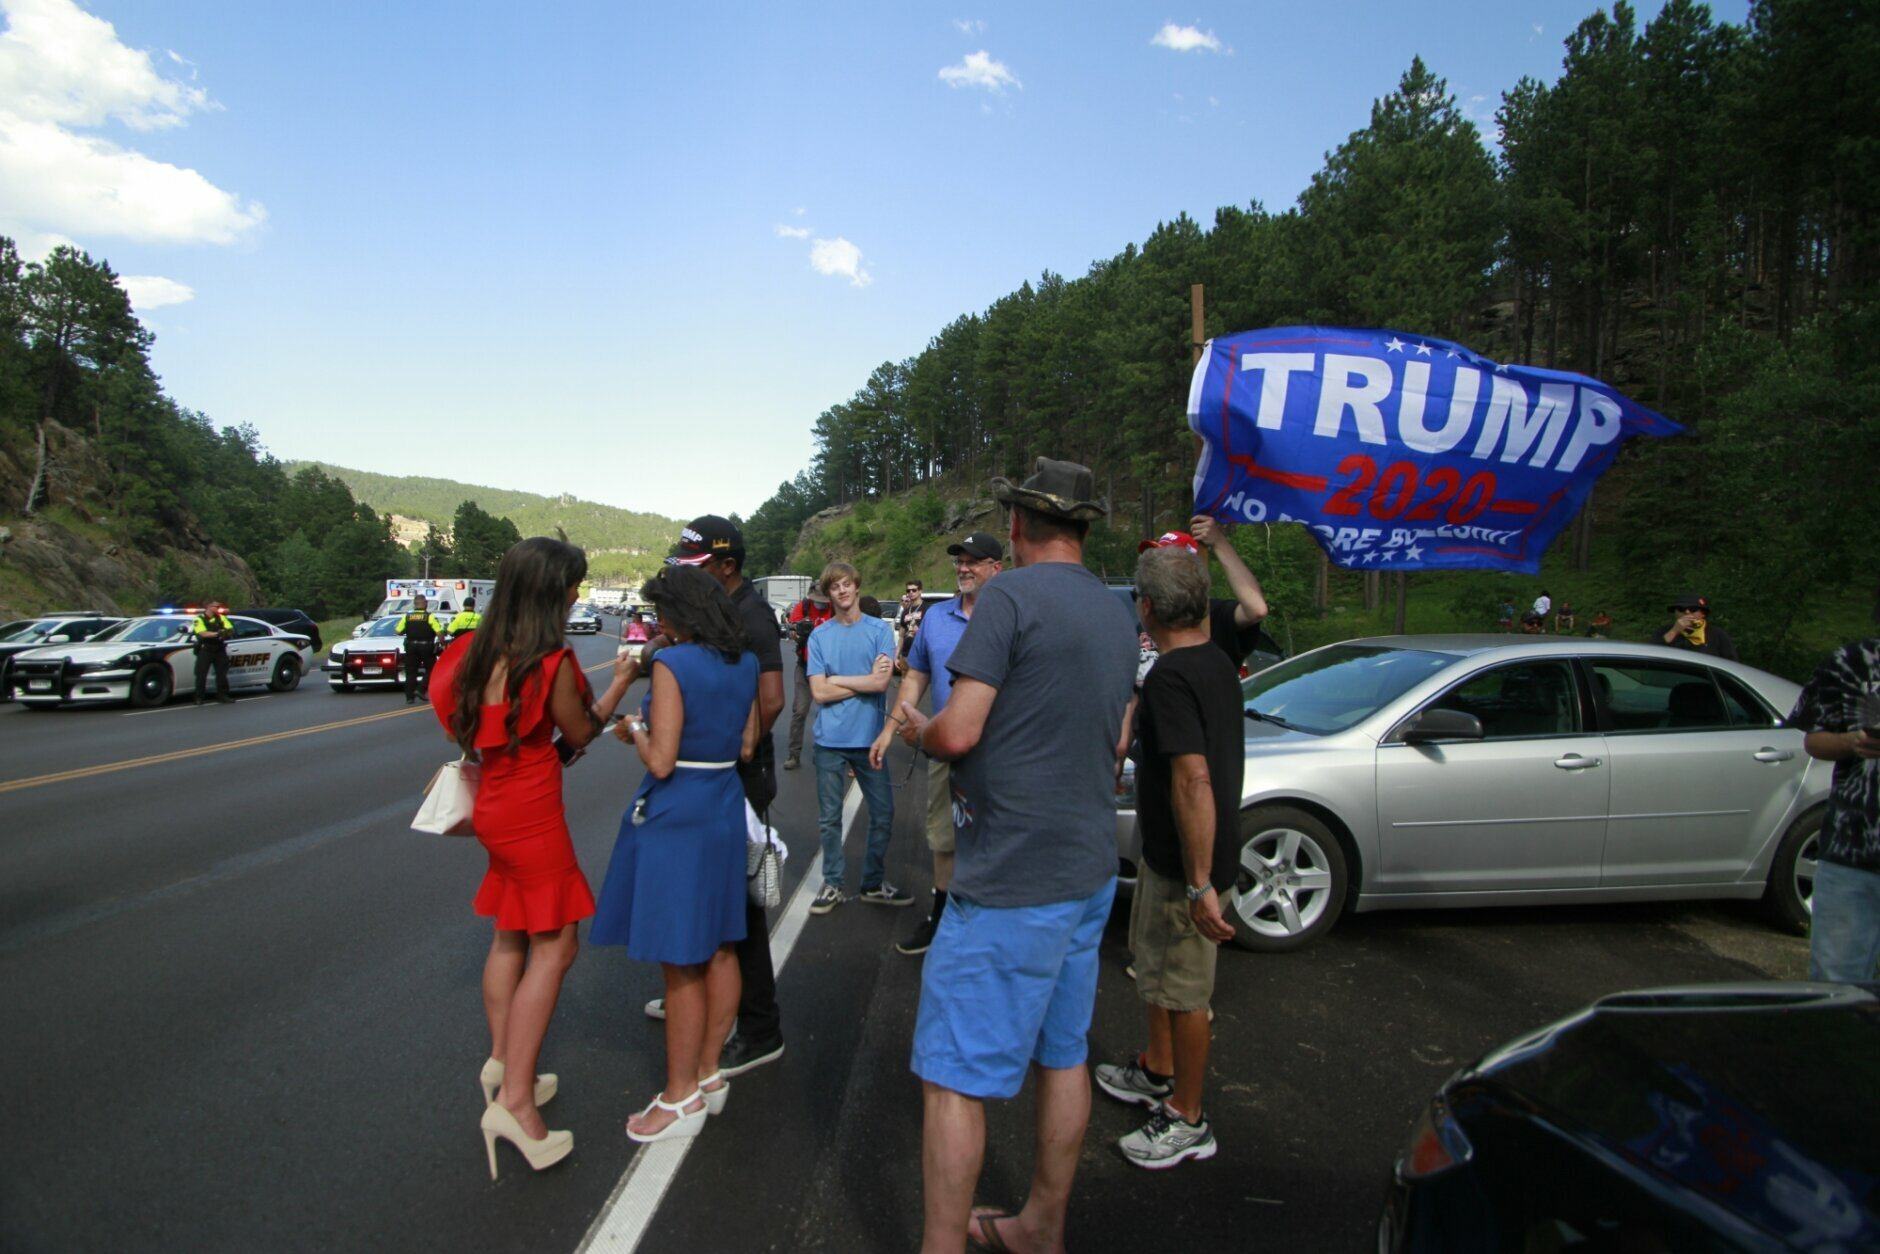 Trump supporters, some who were blocked from reaching Mount Rushmore by a blockade set up by Native American protesters, gather near where protesters clashed with law enforcement officers in Keystone, S.D., Friday, July 3, 2020.. (AP Photo/Stephen Groves)